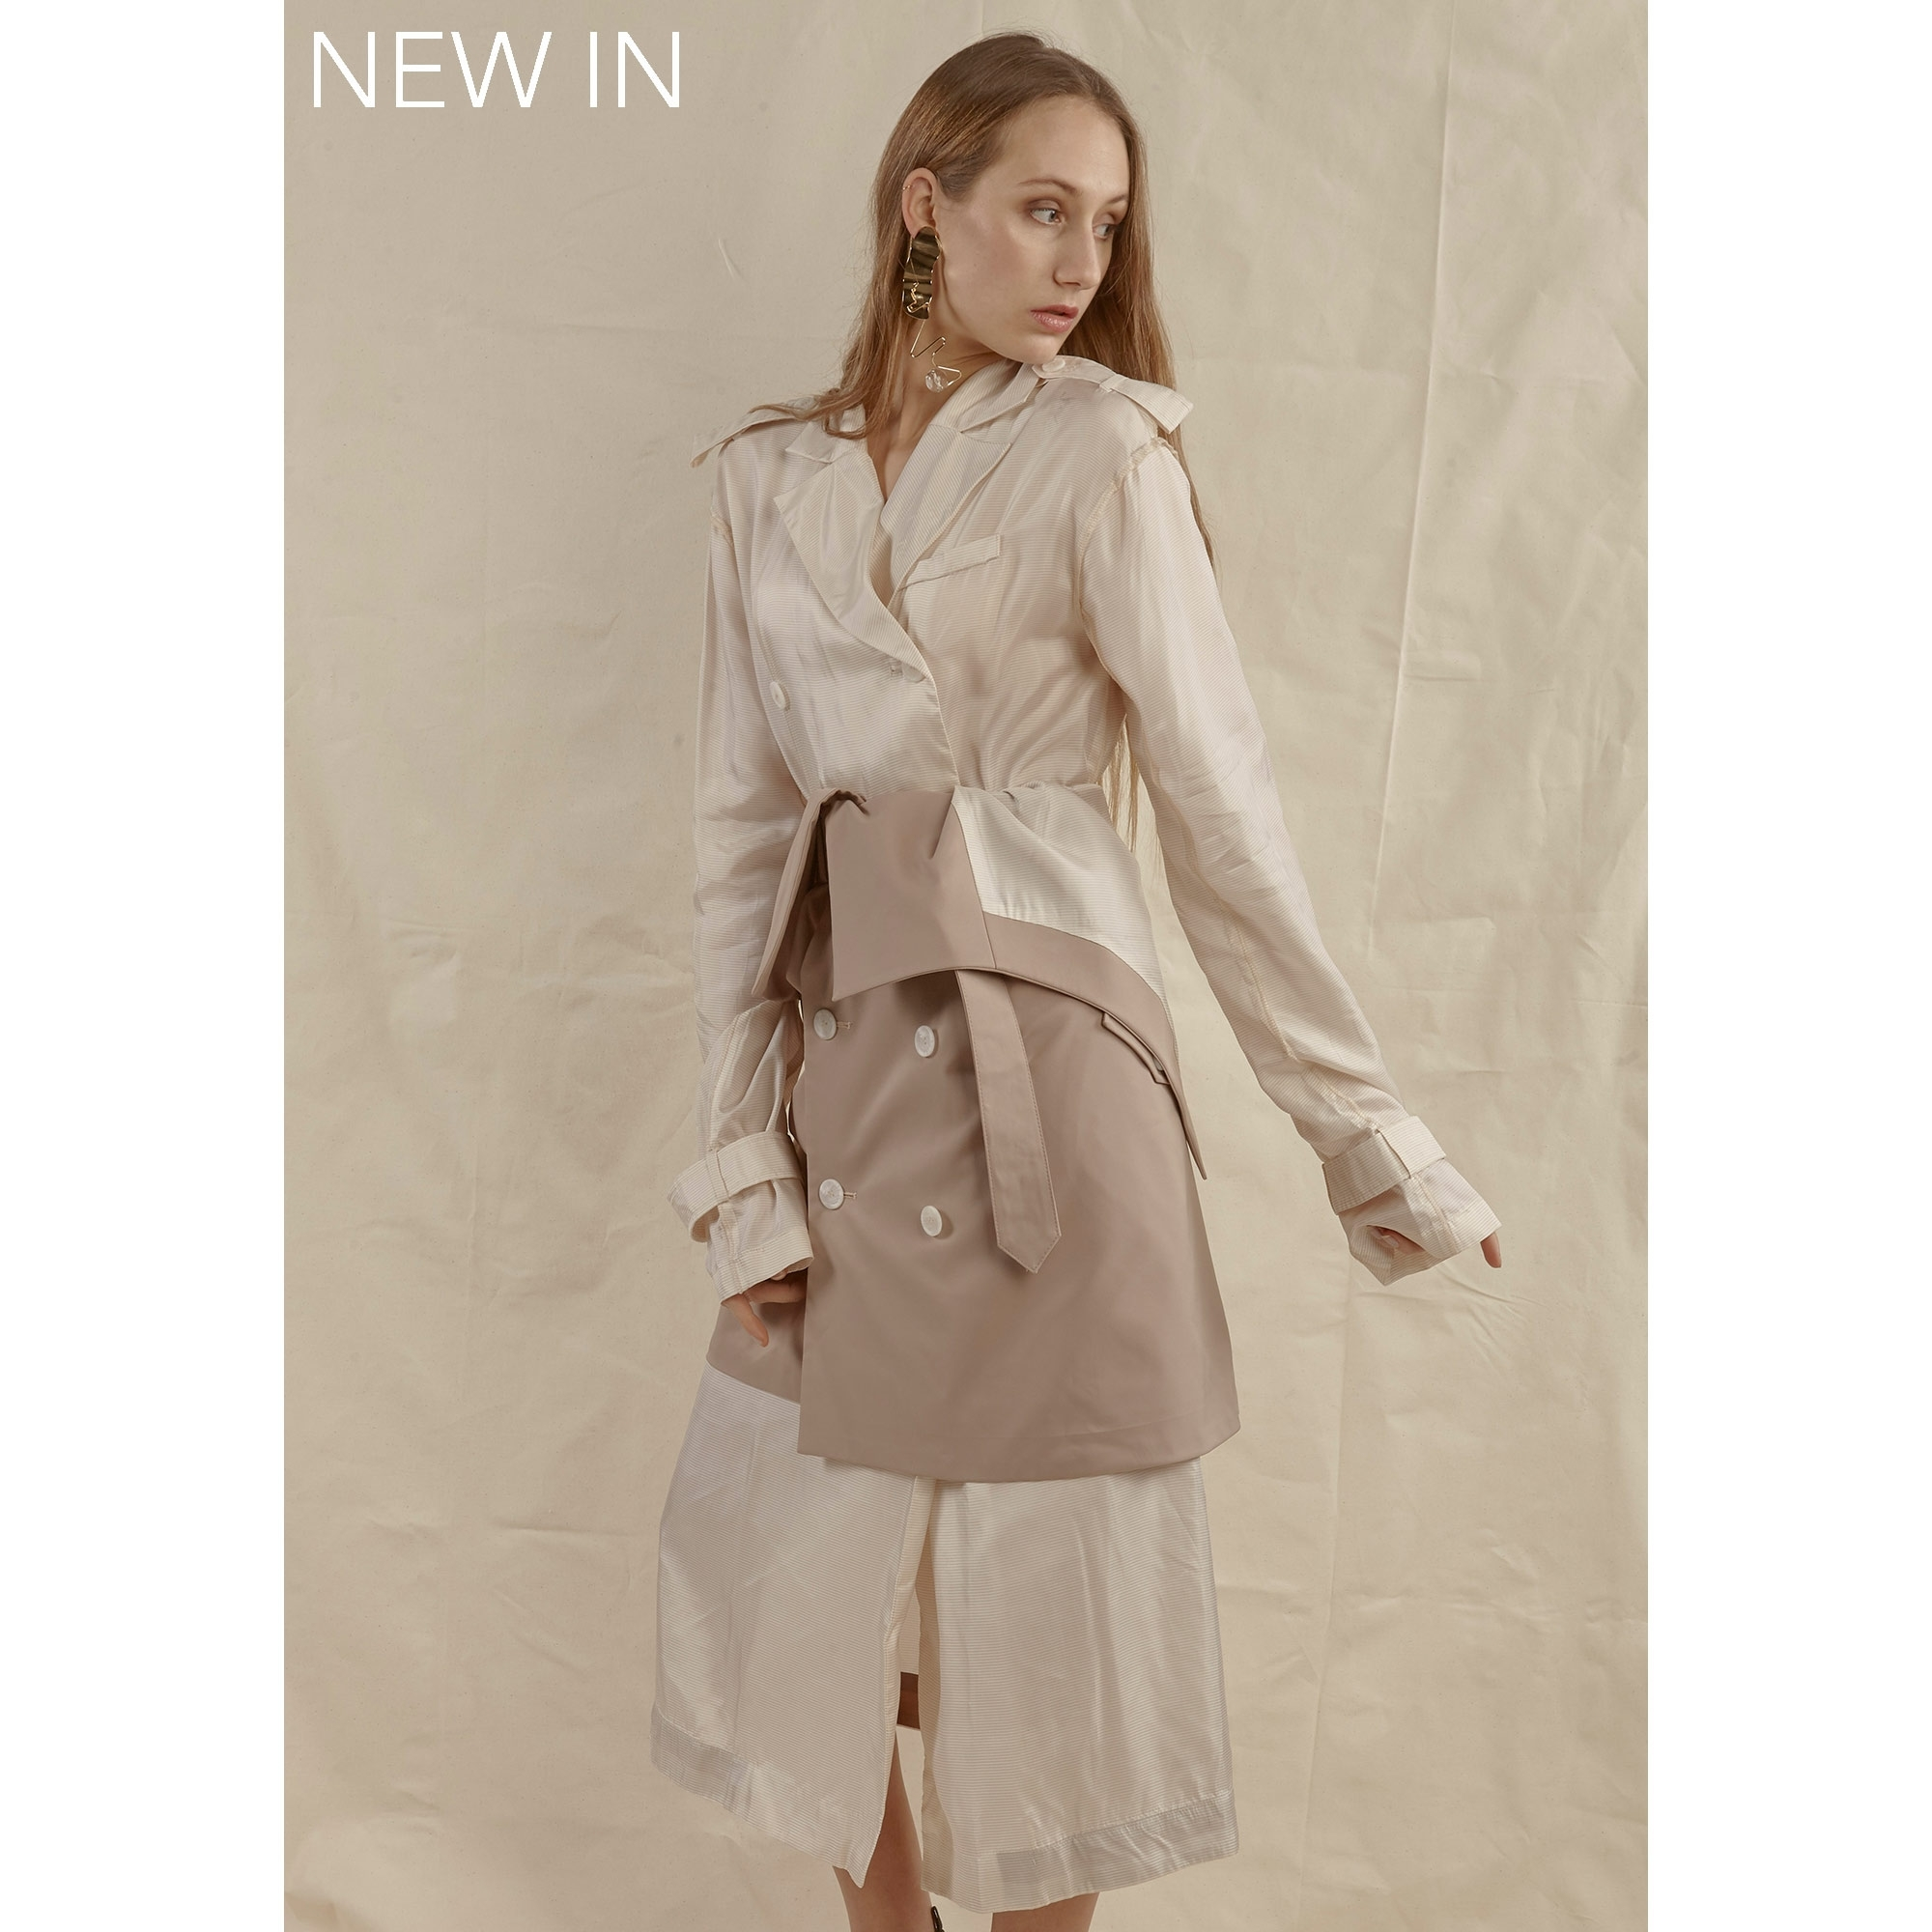 bb0326368e Trench Lining Dress and Deconstructed Trench Skirt - WOMEN from ...